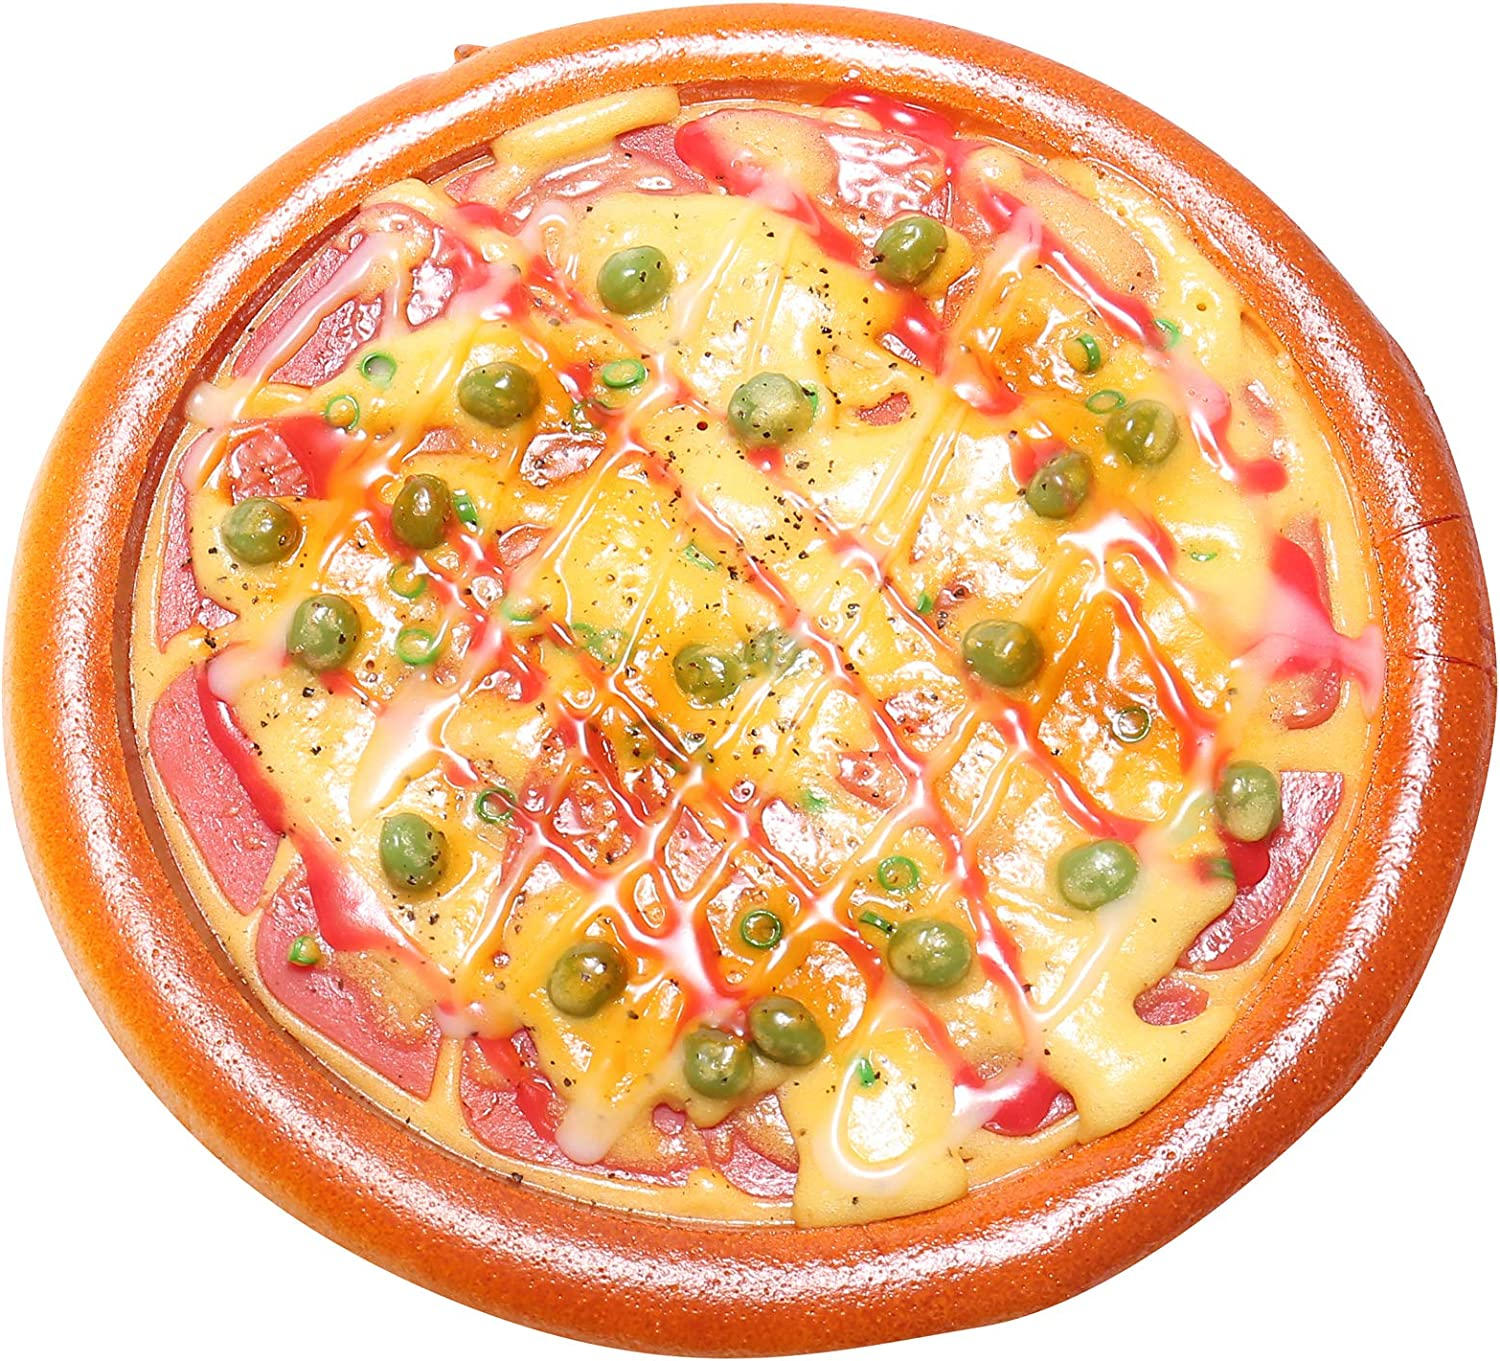 Fake Pizza for Display, Artificial Seafood Hotdog Peigen Play Bake Foods, Perfect for Kids Pretend Cook Party, Kitchen Realistic Foods Decorations, 1 Piece (Bacon Pizza)